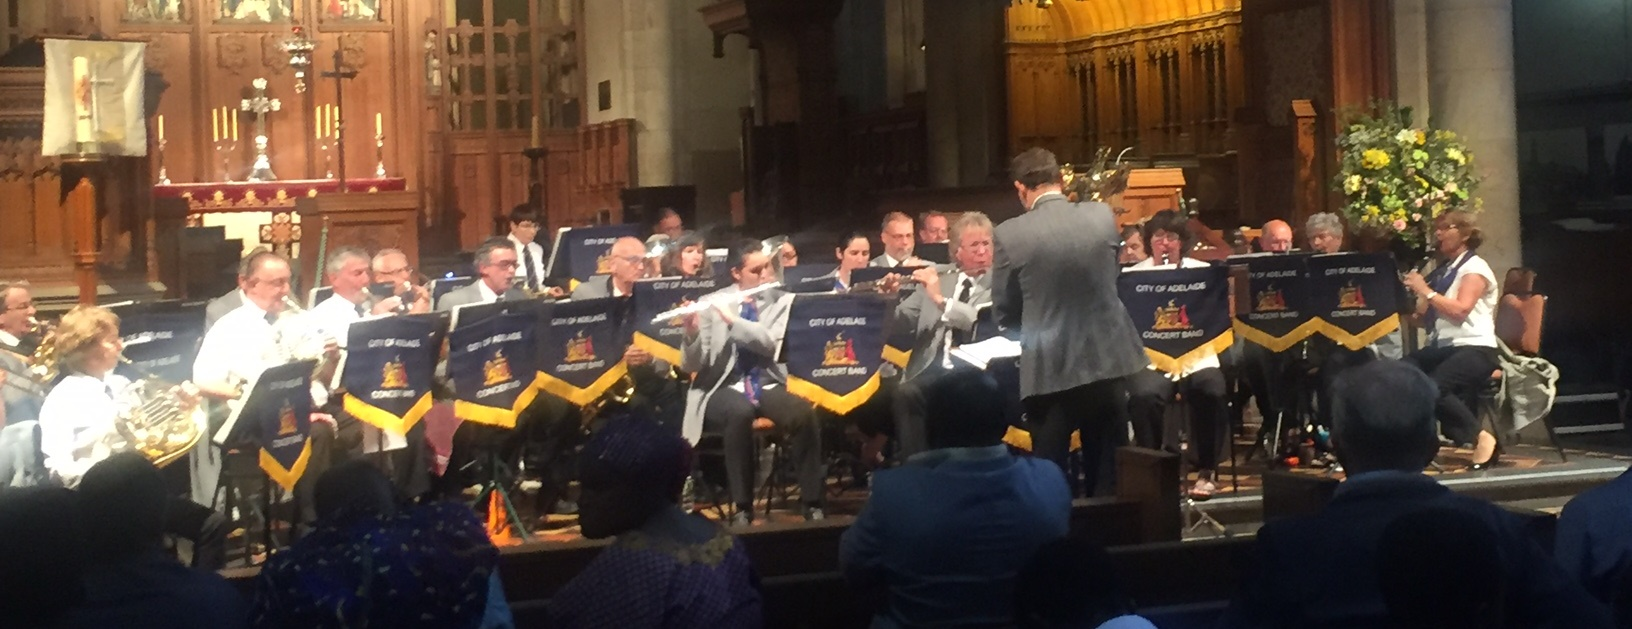 City of Adelaide Band - Concert